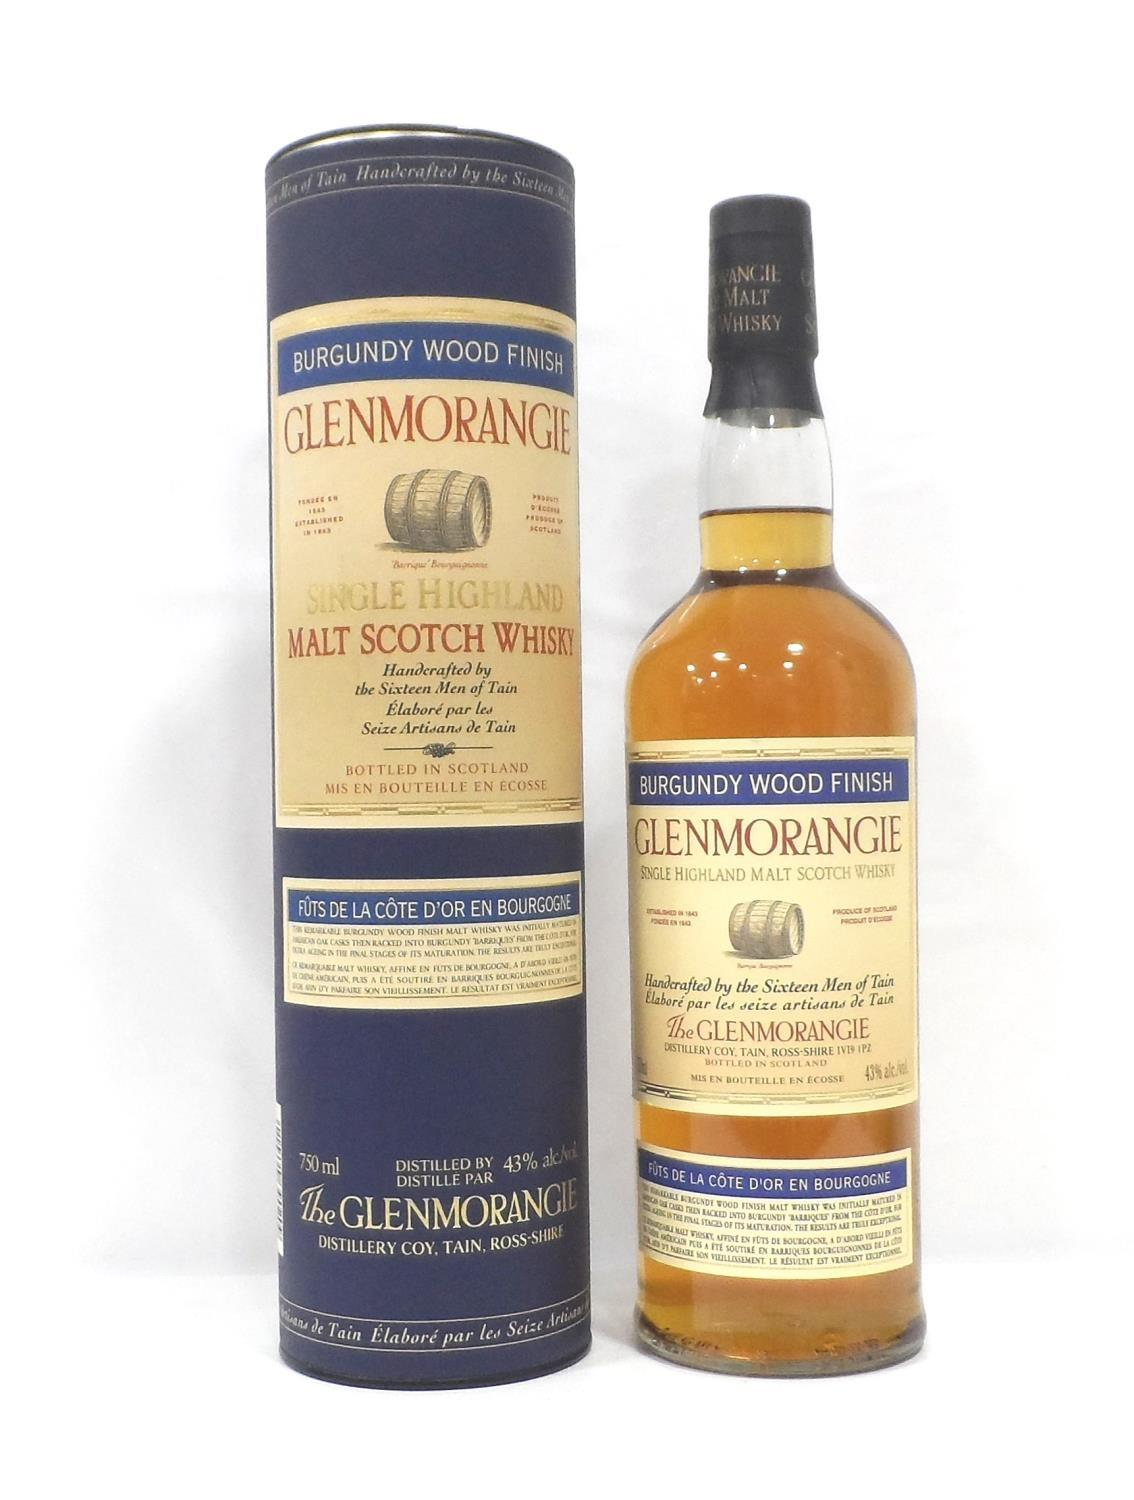 Lot 2 - GLENMORANGIE BURGUNDY WOOD FINISH The Glenmorangie Distillery were one of the pioneers of ""